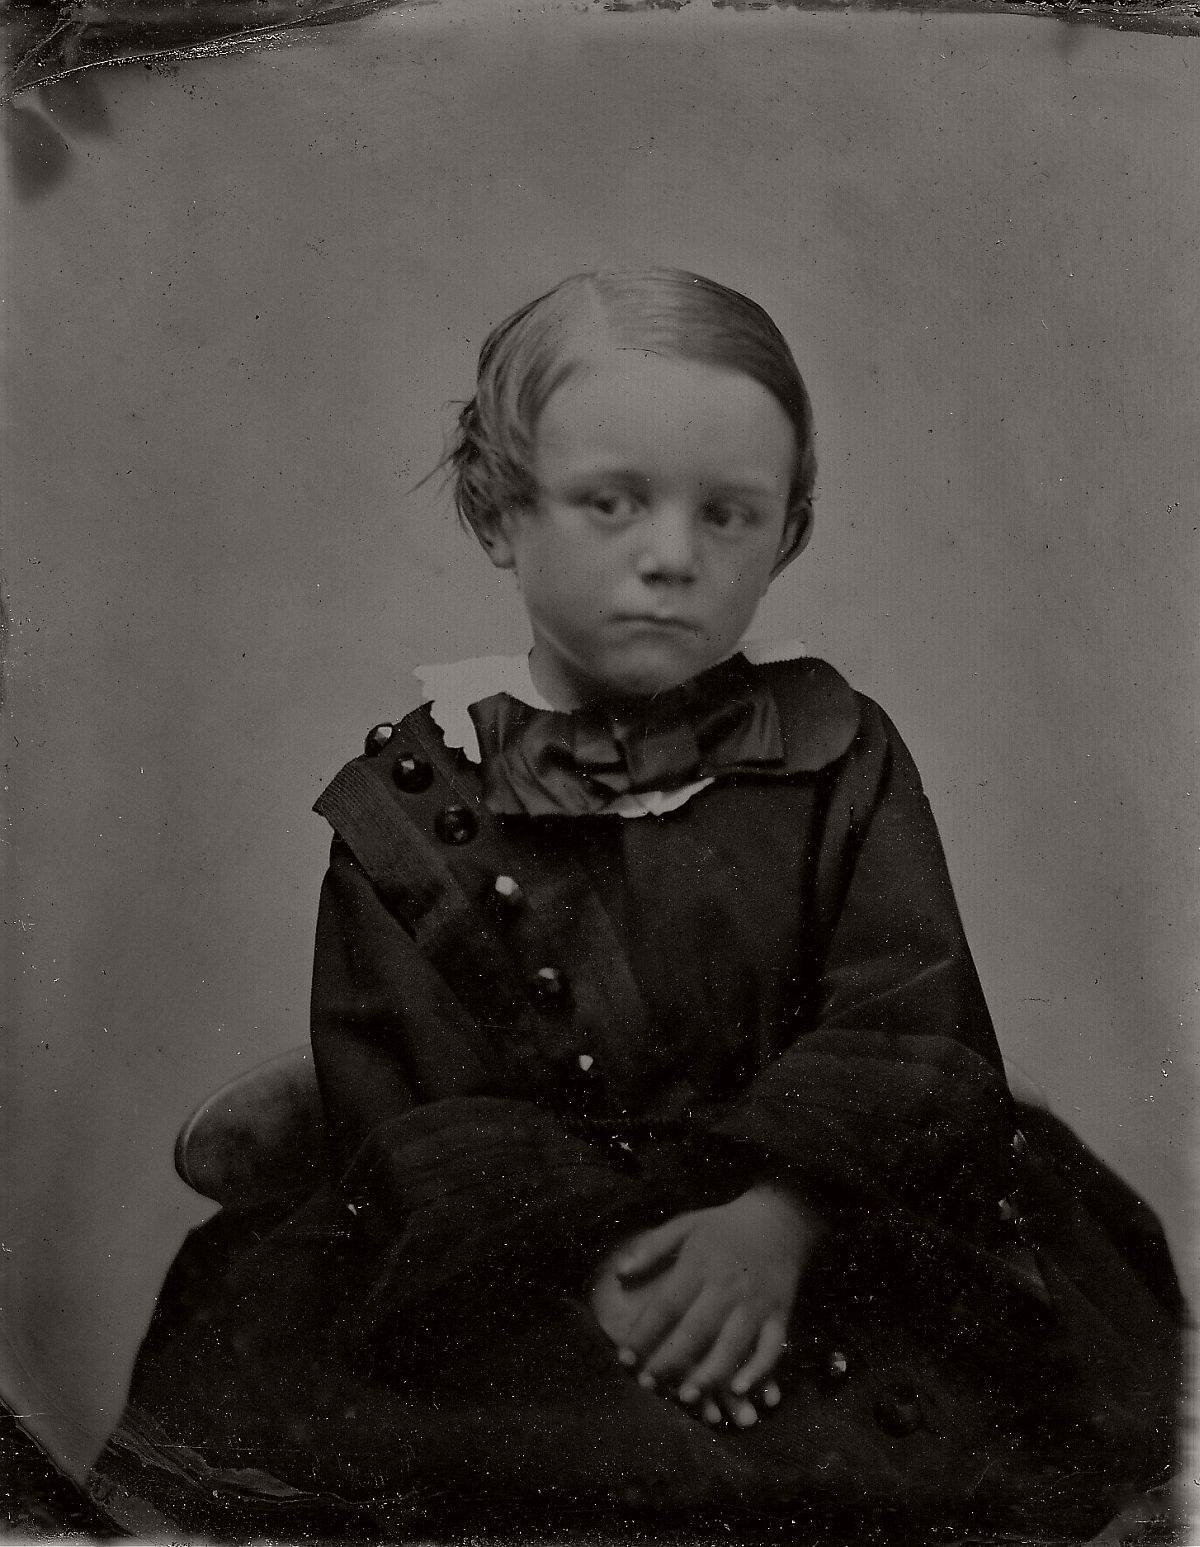 victorian-era-ambrotype-portraits-of-children-1850s-and-1860s-61